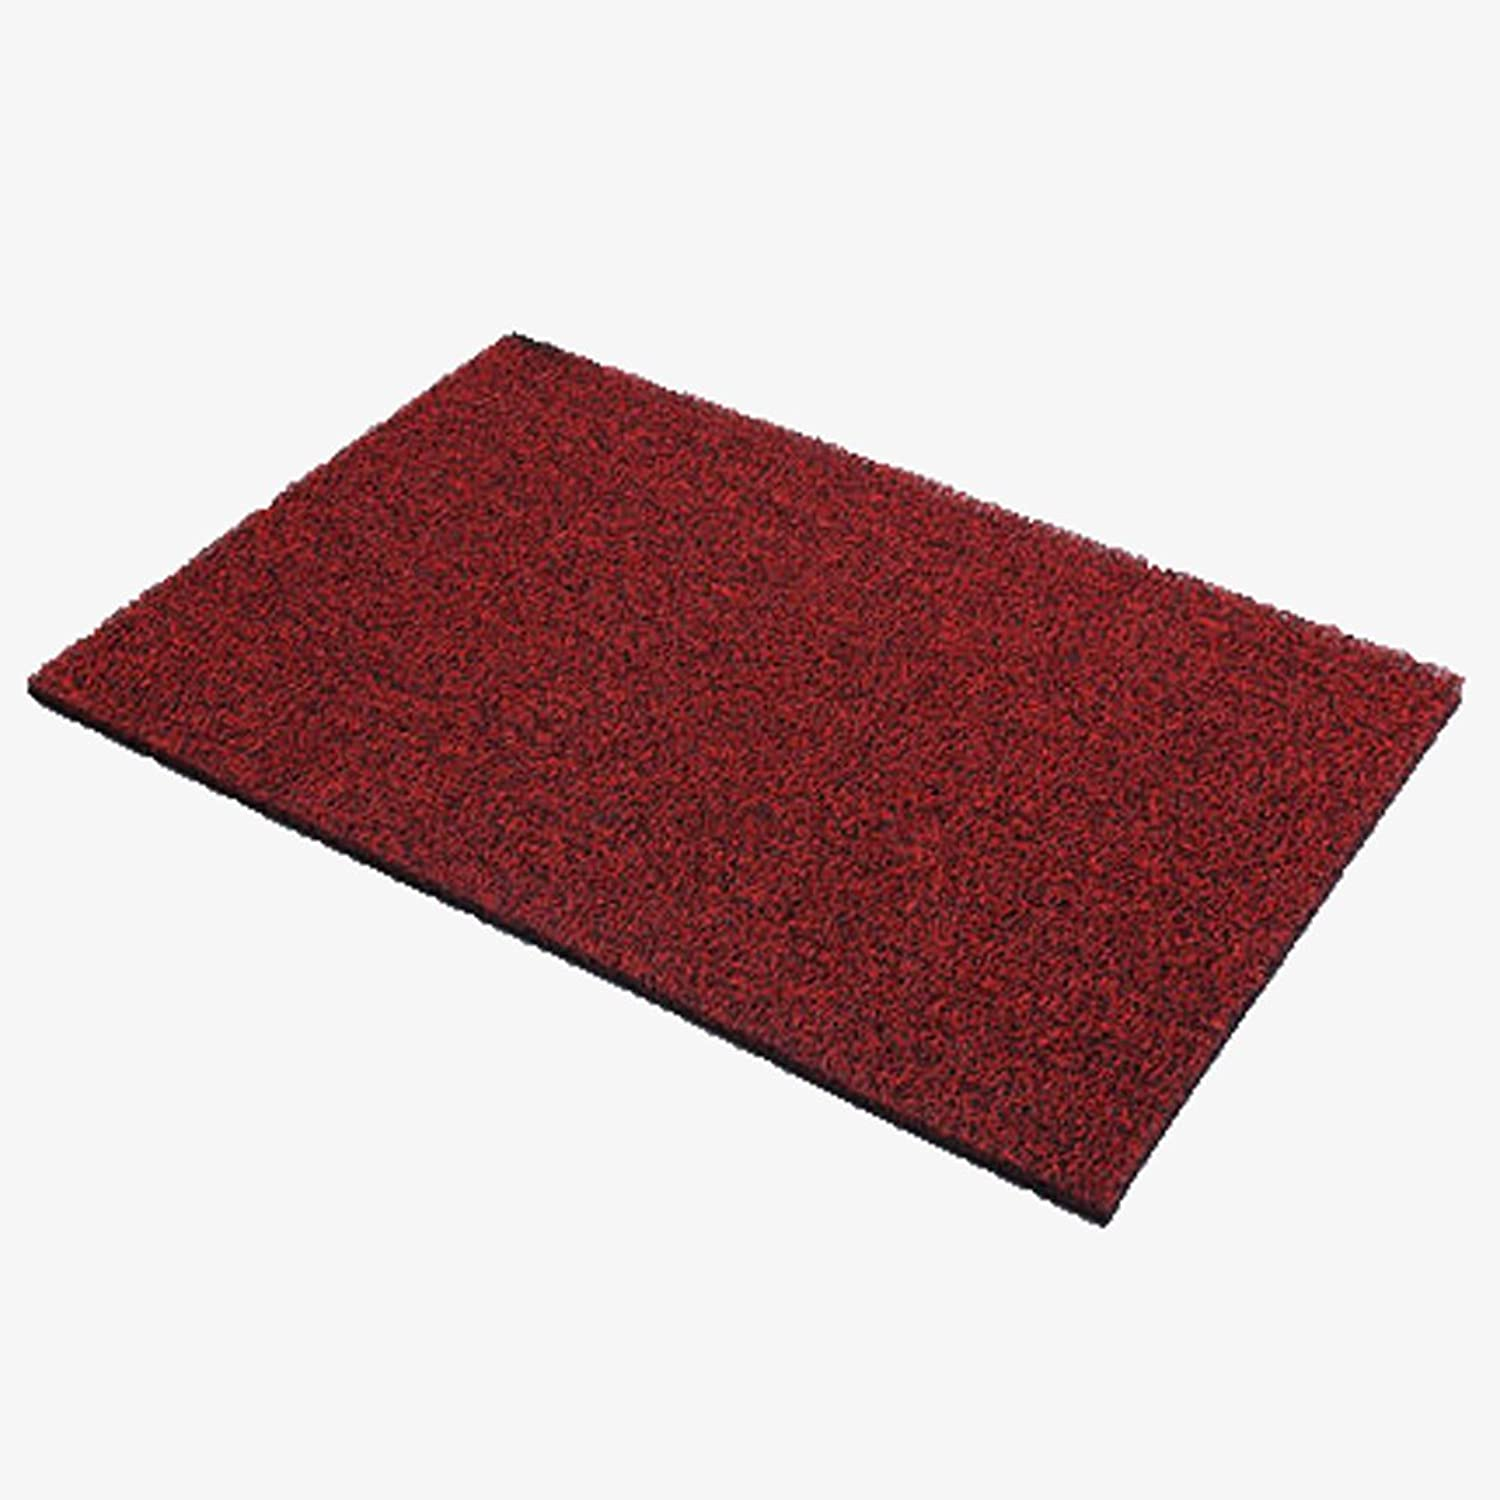 Modern Entrance Mat Heavy Duty Doormat Indoor Mats for Entryway Dirt Trapper Mats-Non Slip,Durable,Tough-Black and red 60x90cm(24x35inch)